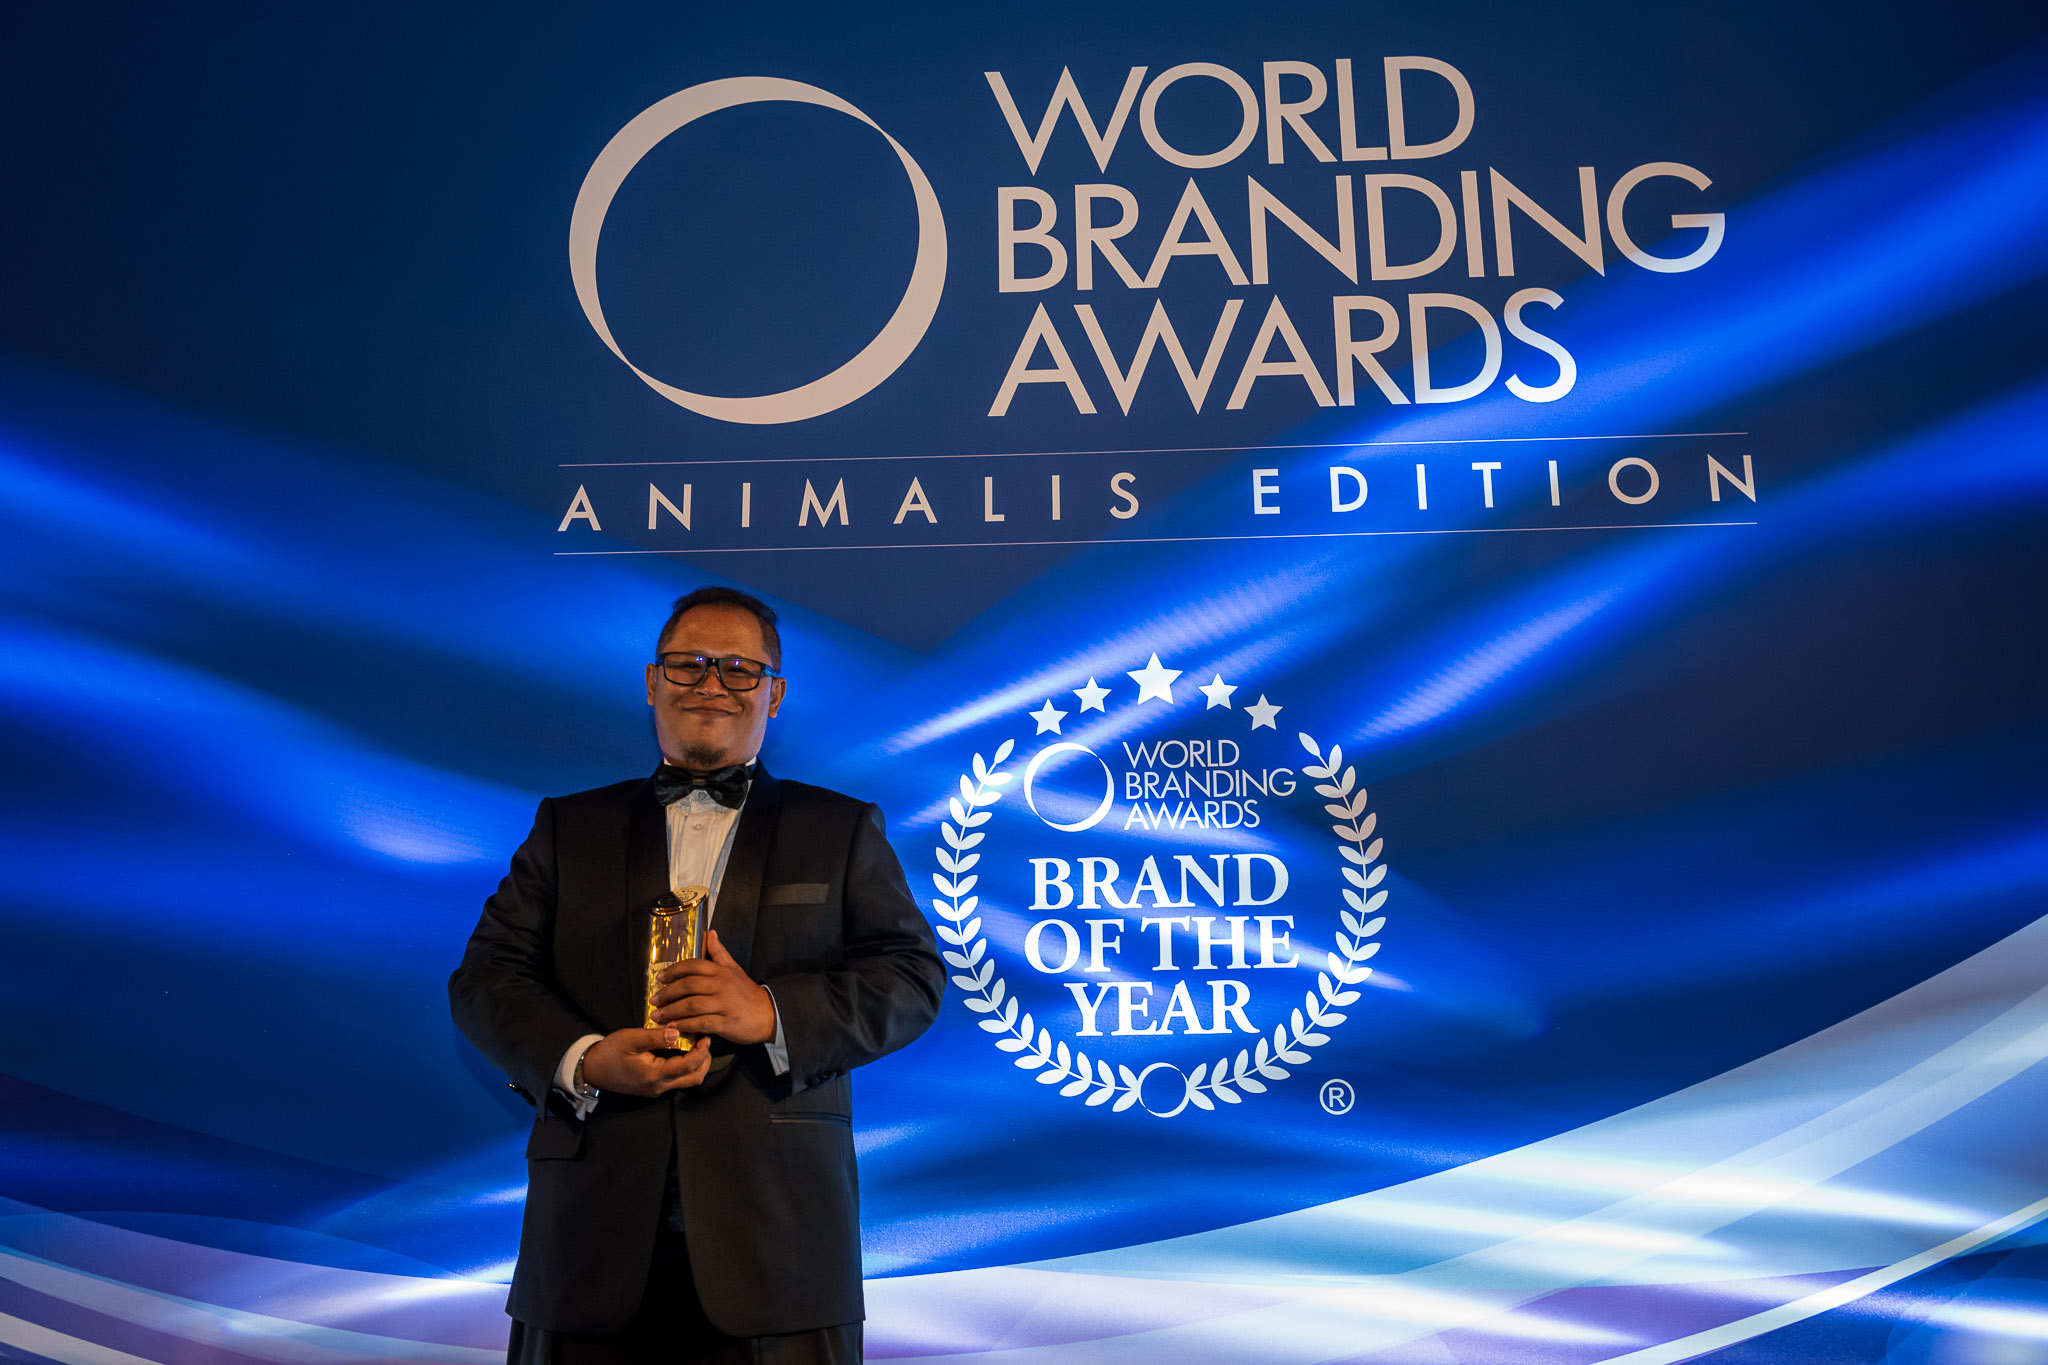 20190703_225742_world_branding_awards_animalis_8167